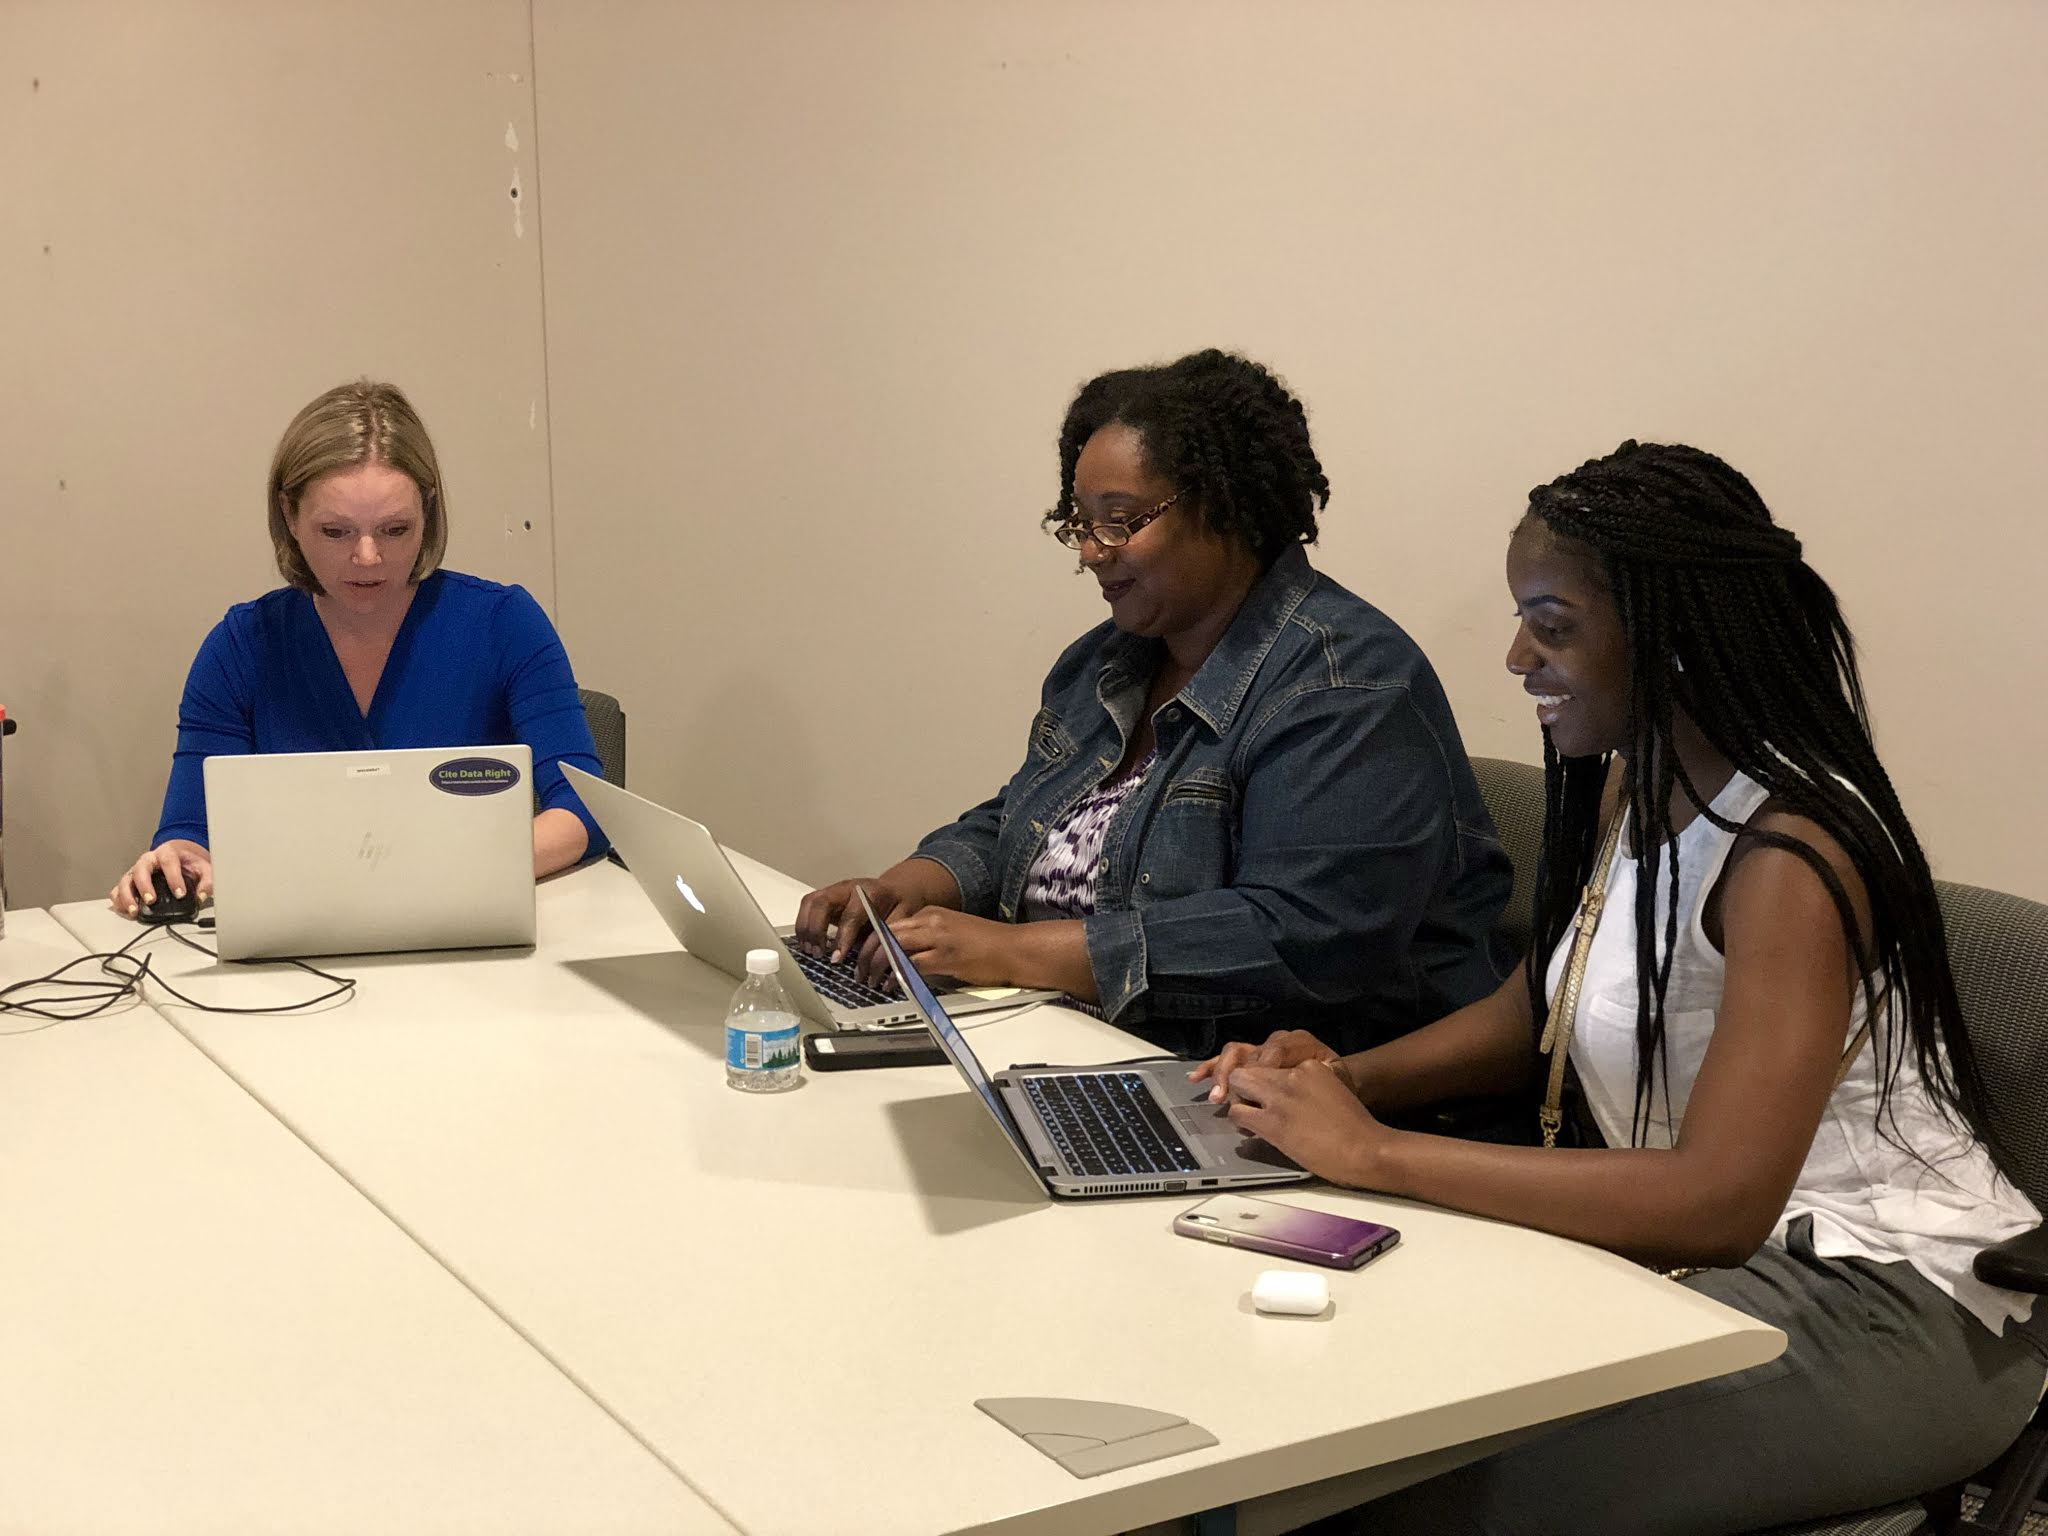 Ann, Dory and Mi'Lisa working during the Tweetchat